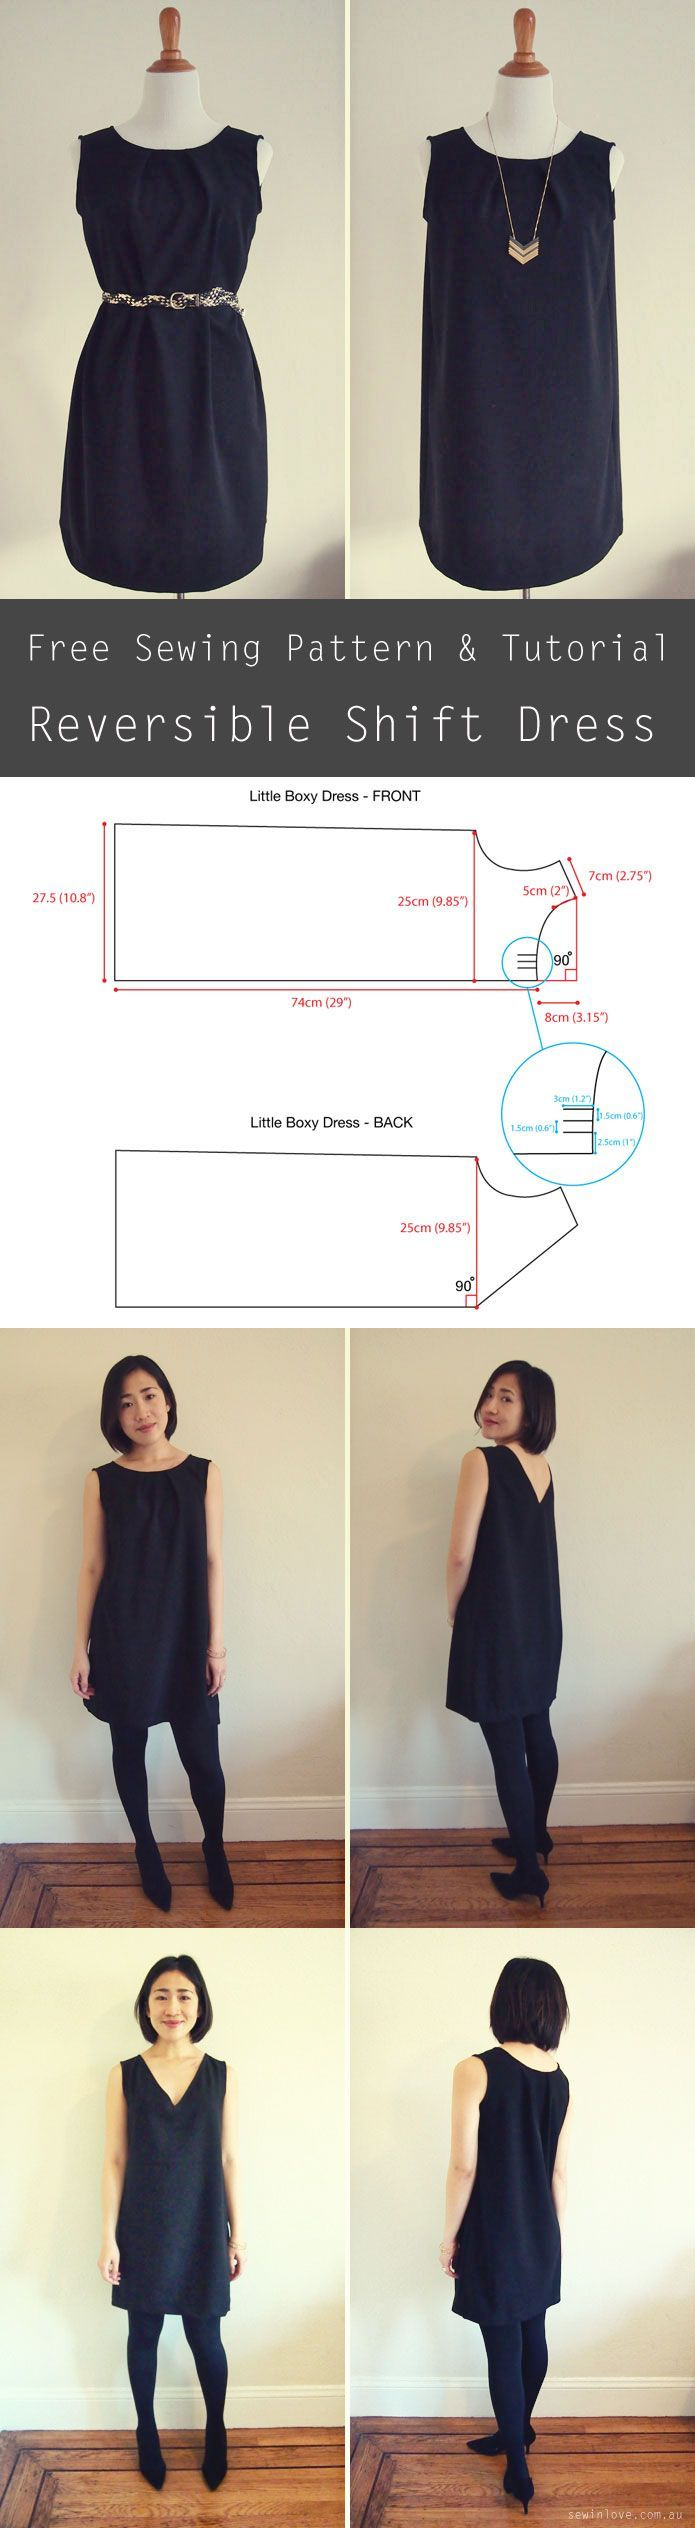 Make rather dresses with this collection of over two hundred and also sixty complimentary gown patterns & tutorials gathered from all over the web – stitch informal dresses, formal dresses,...